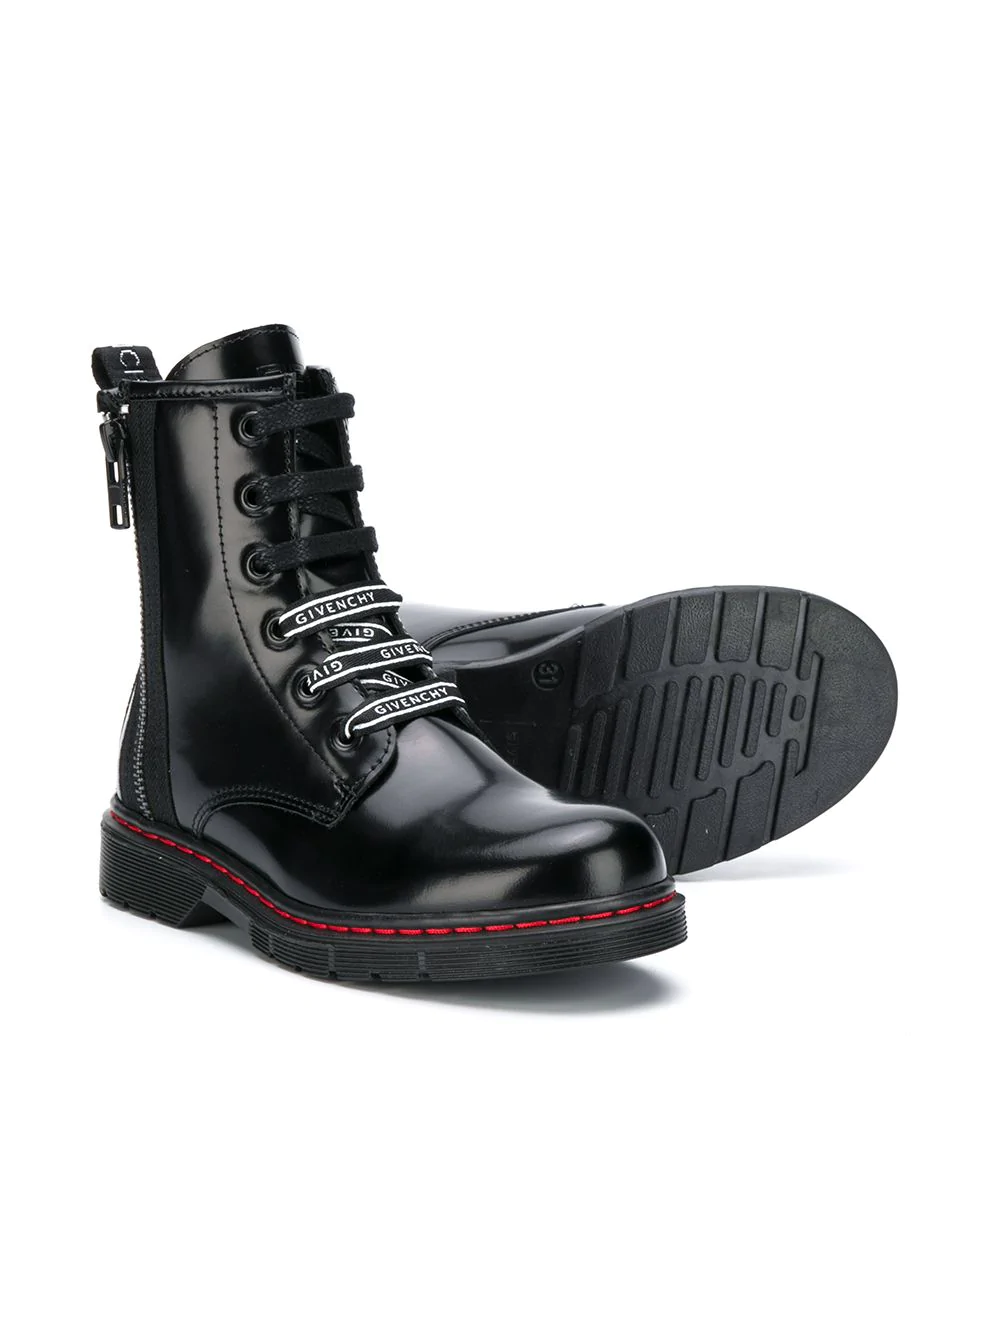 Boots, Leather lace up boots, Lace